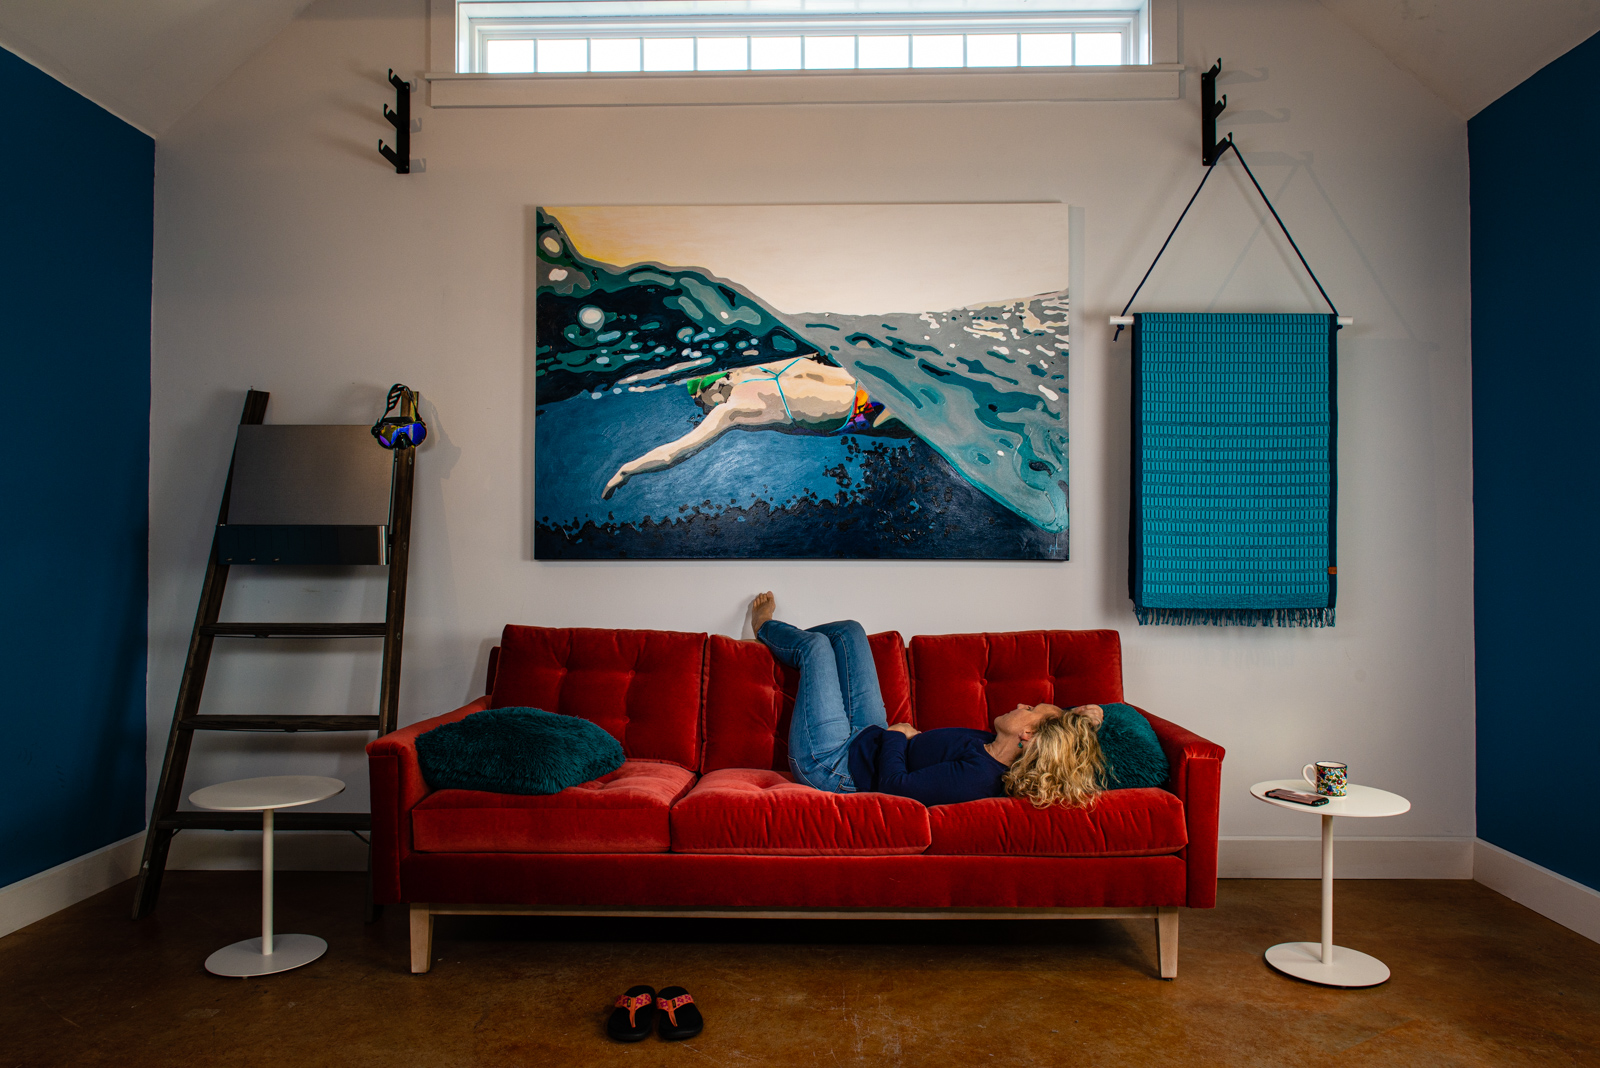 Heather Perry relaxing on a red velvety couch gazing at her paintings on the wall.